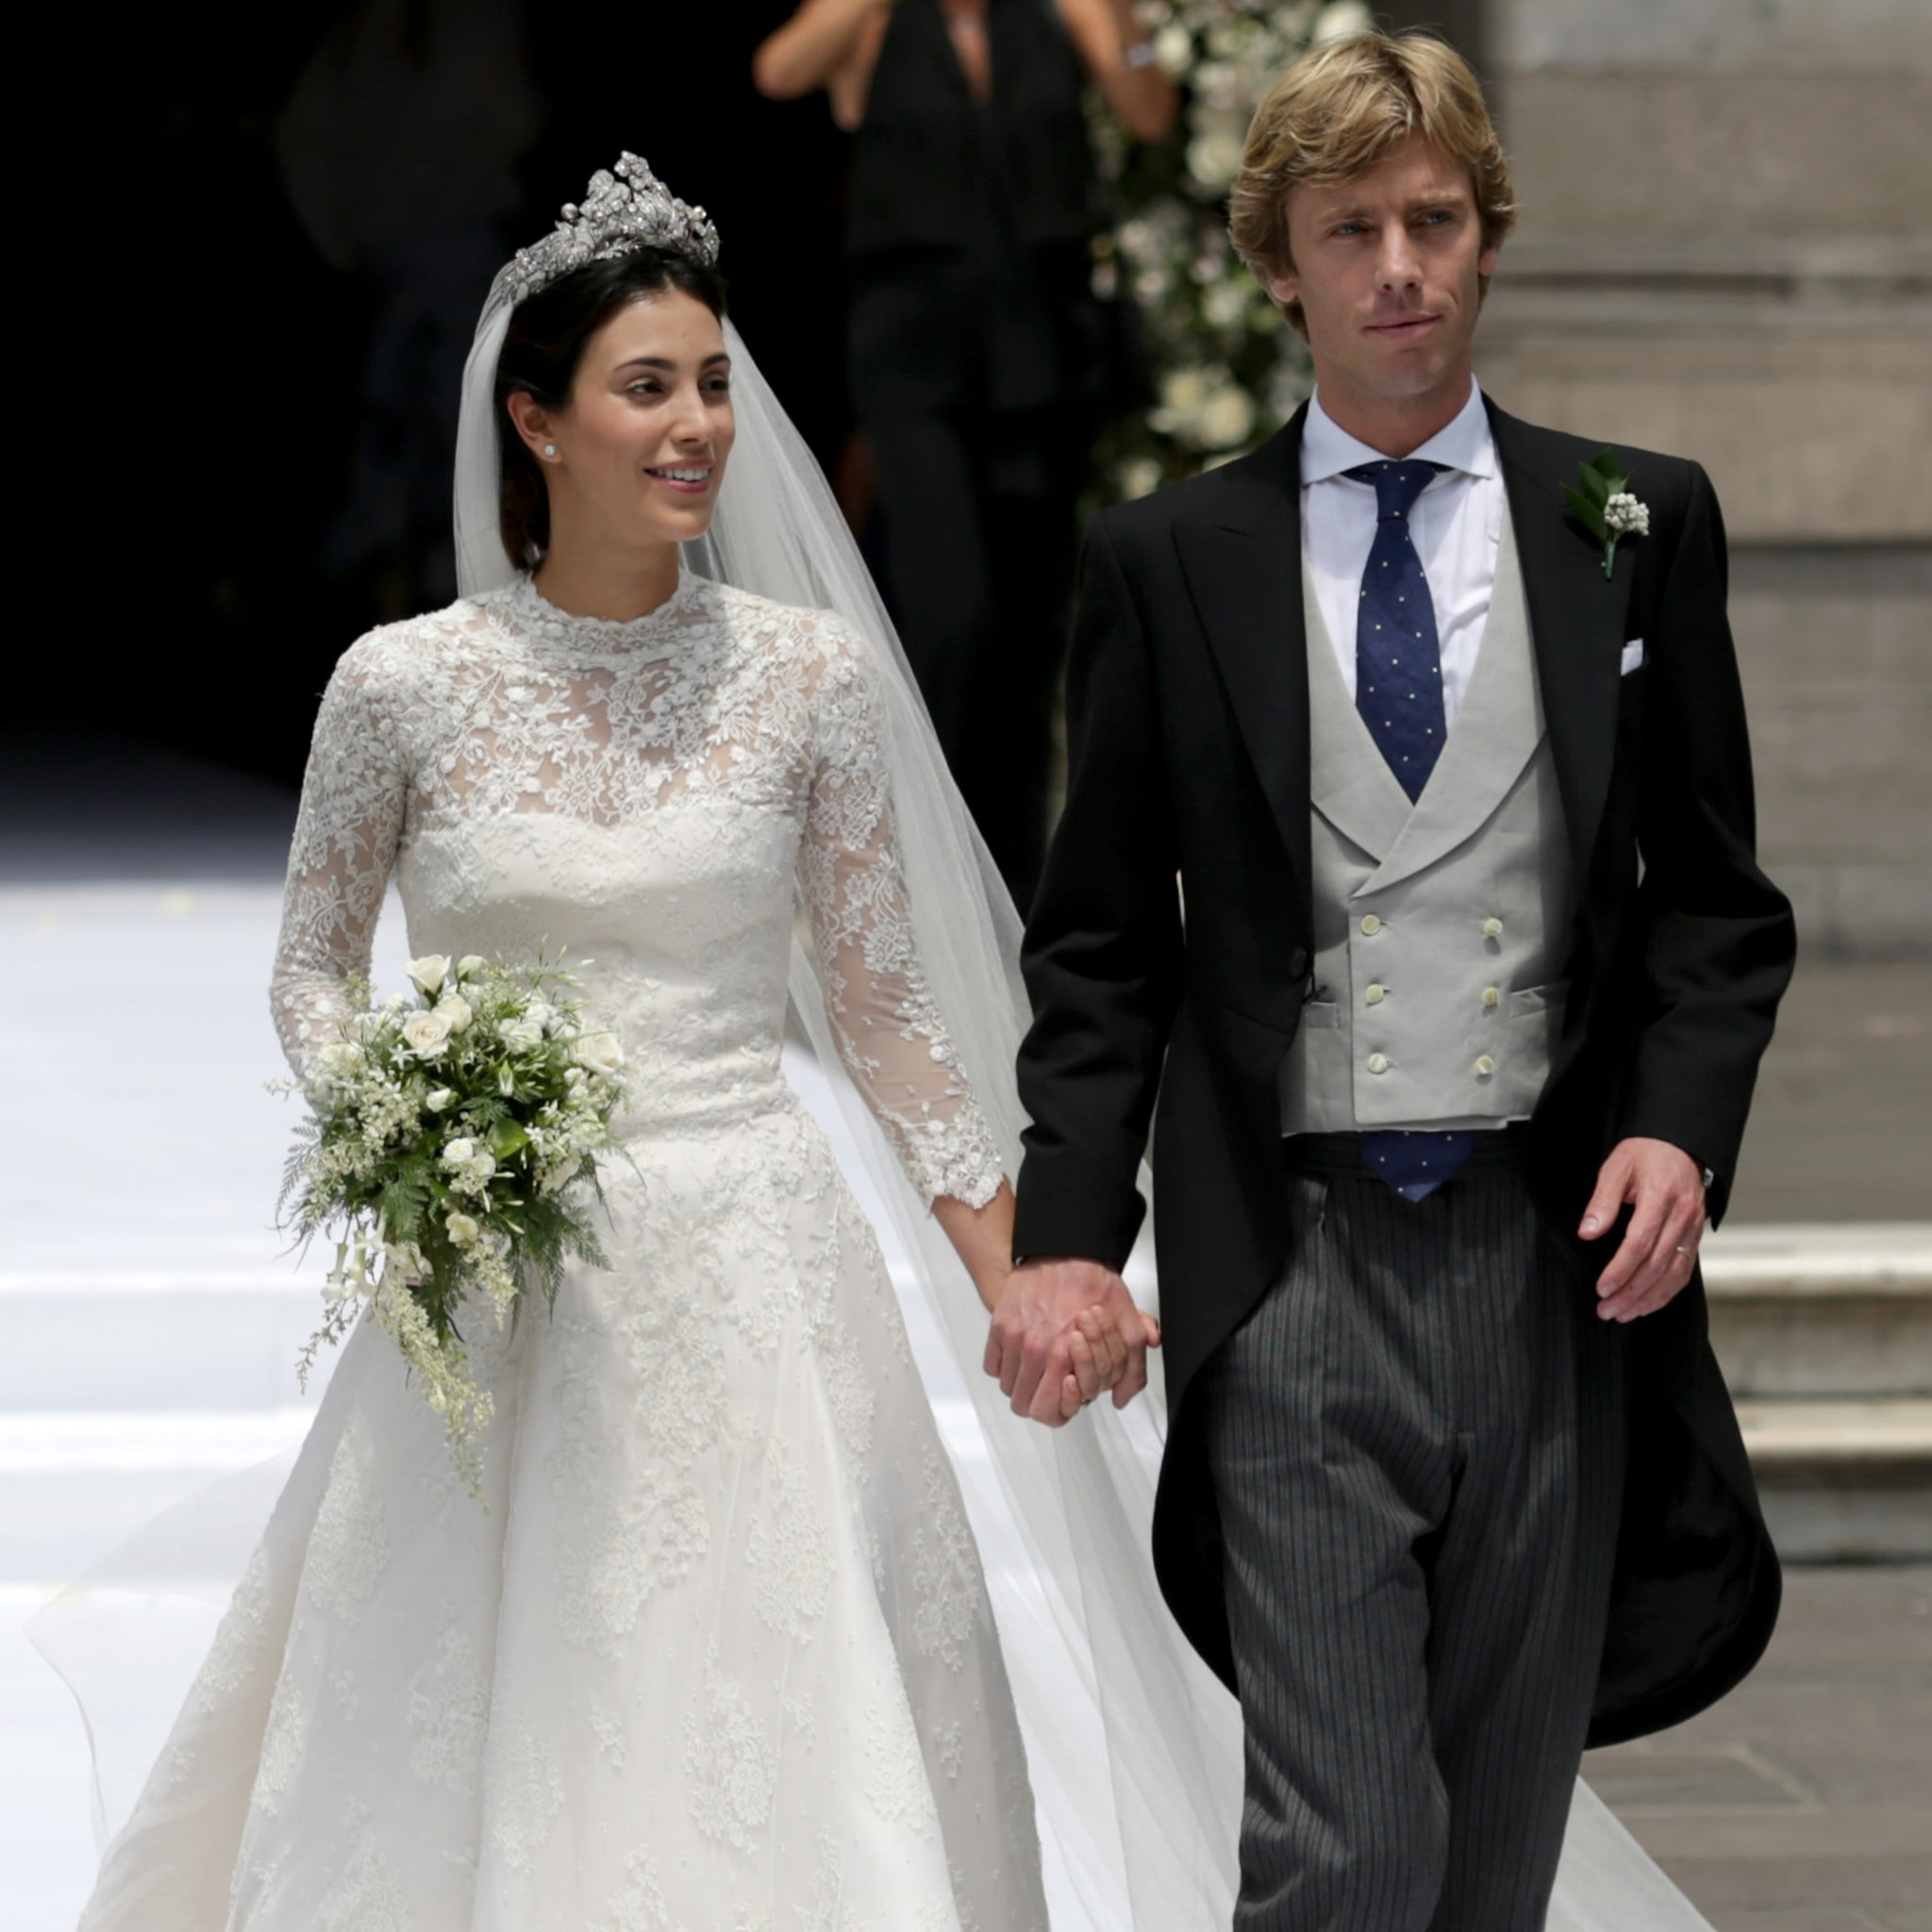 Prince Christian of Hanover and Alessandra Wedding Pictures ...